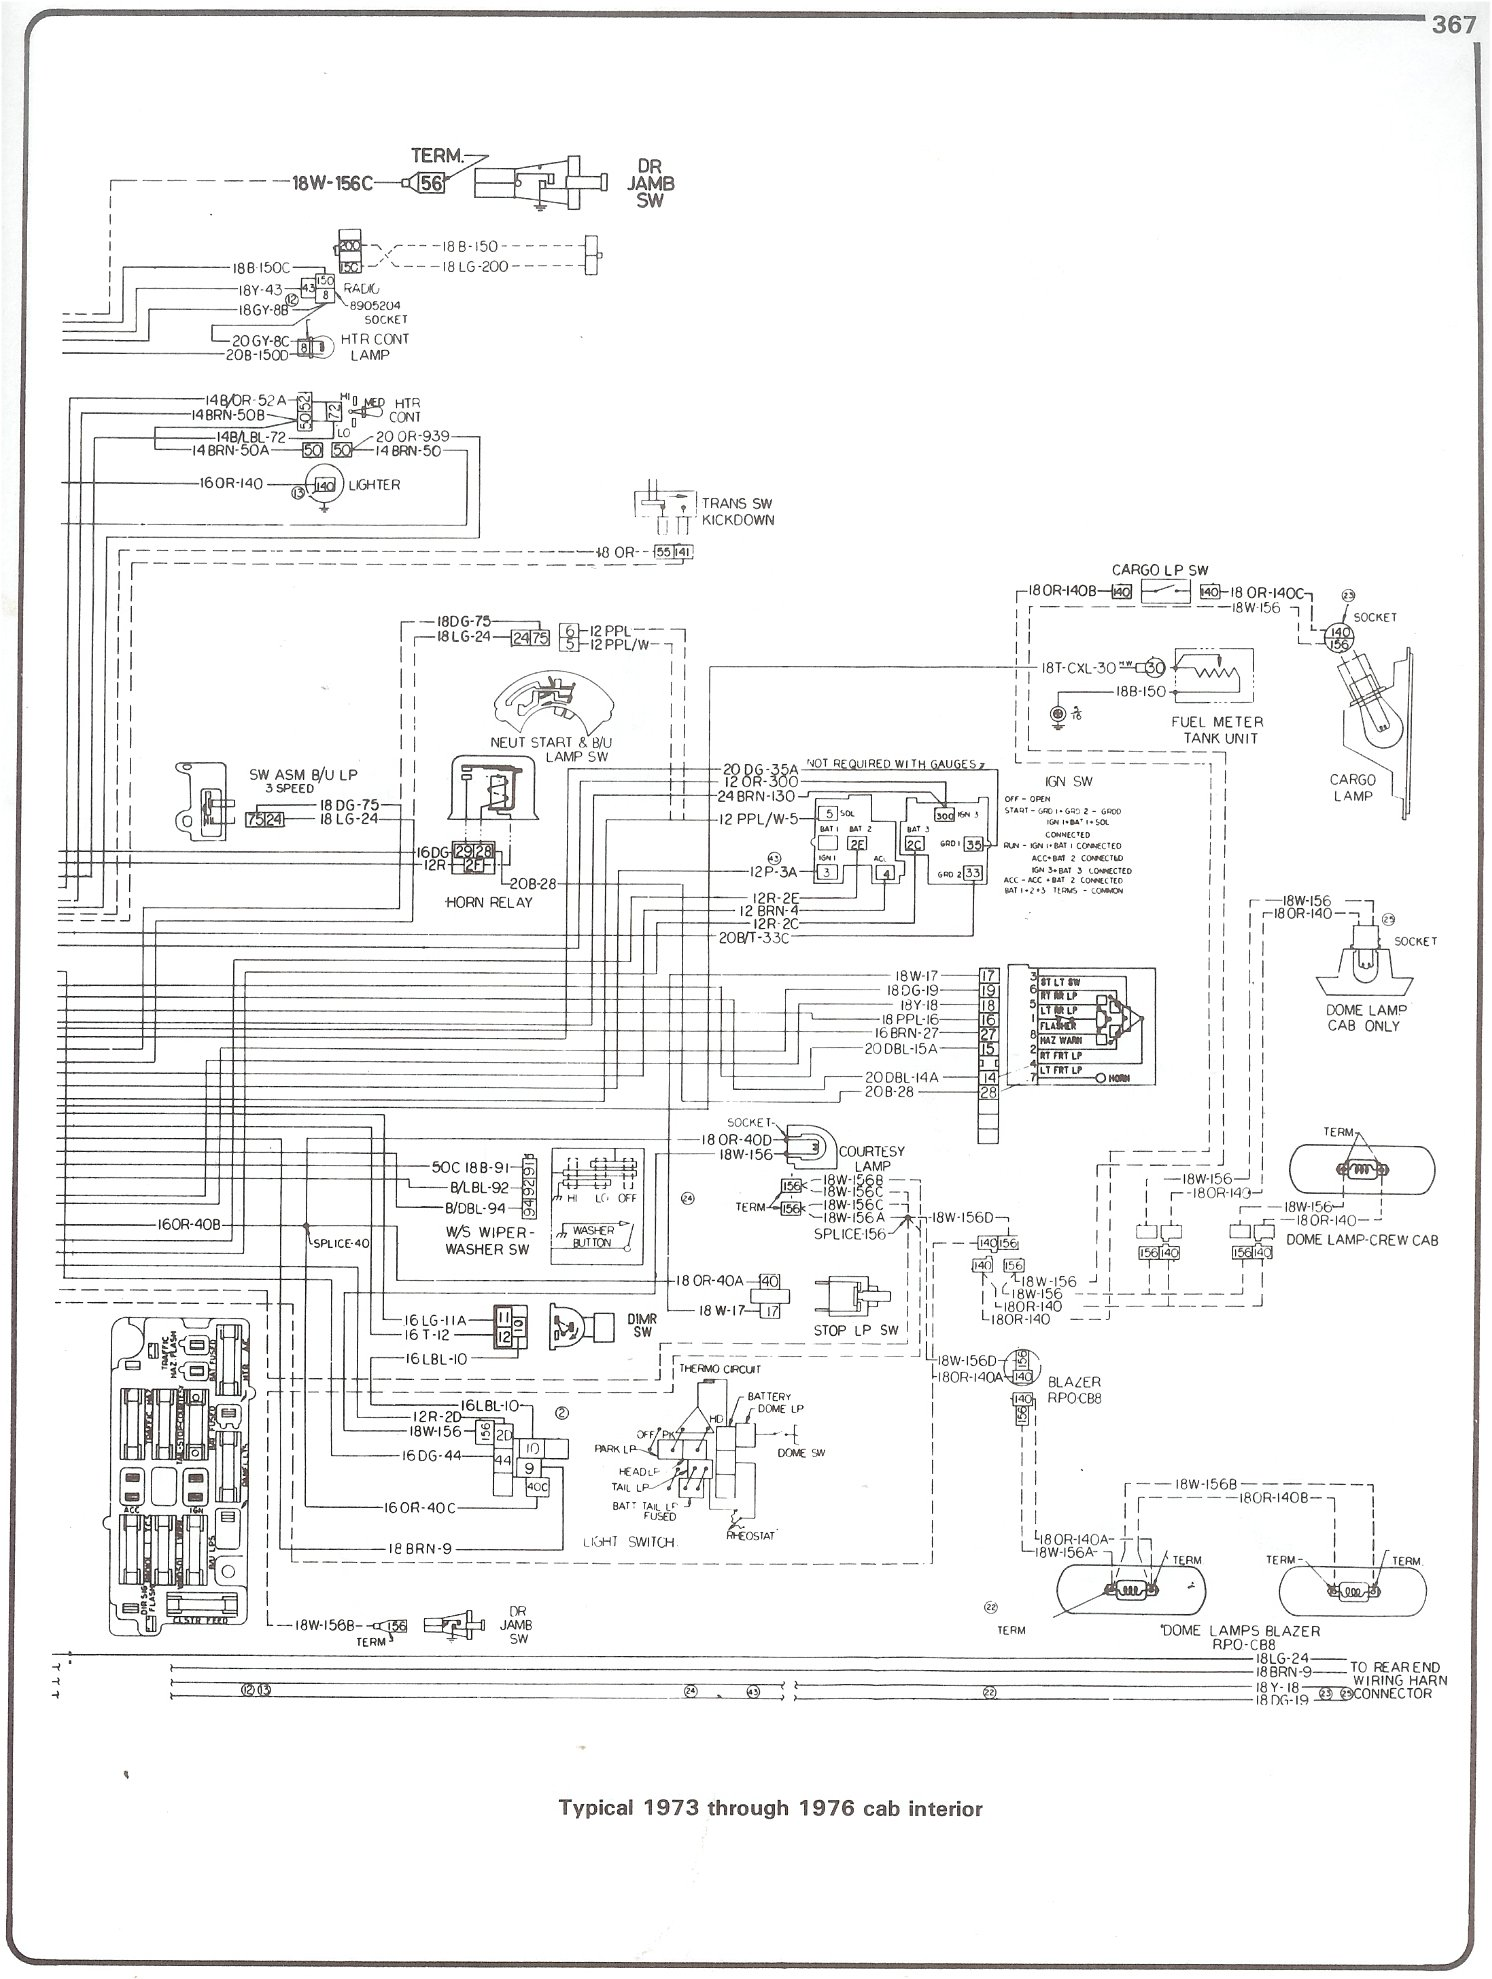 73 76_cab_inter complete 73 87 wiring diagrams 2001 chevy silverado instrument cluster wiring diagram at gsmportal.co